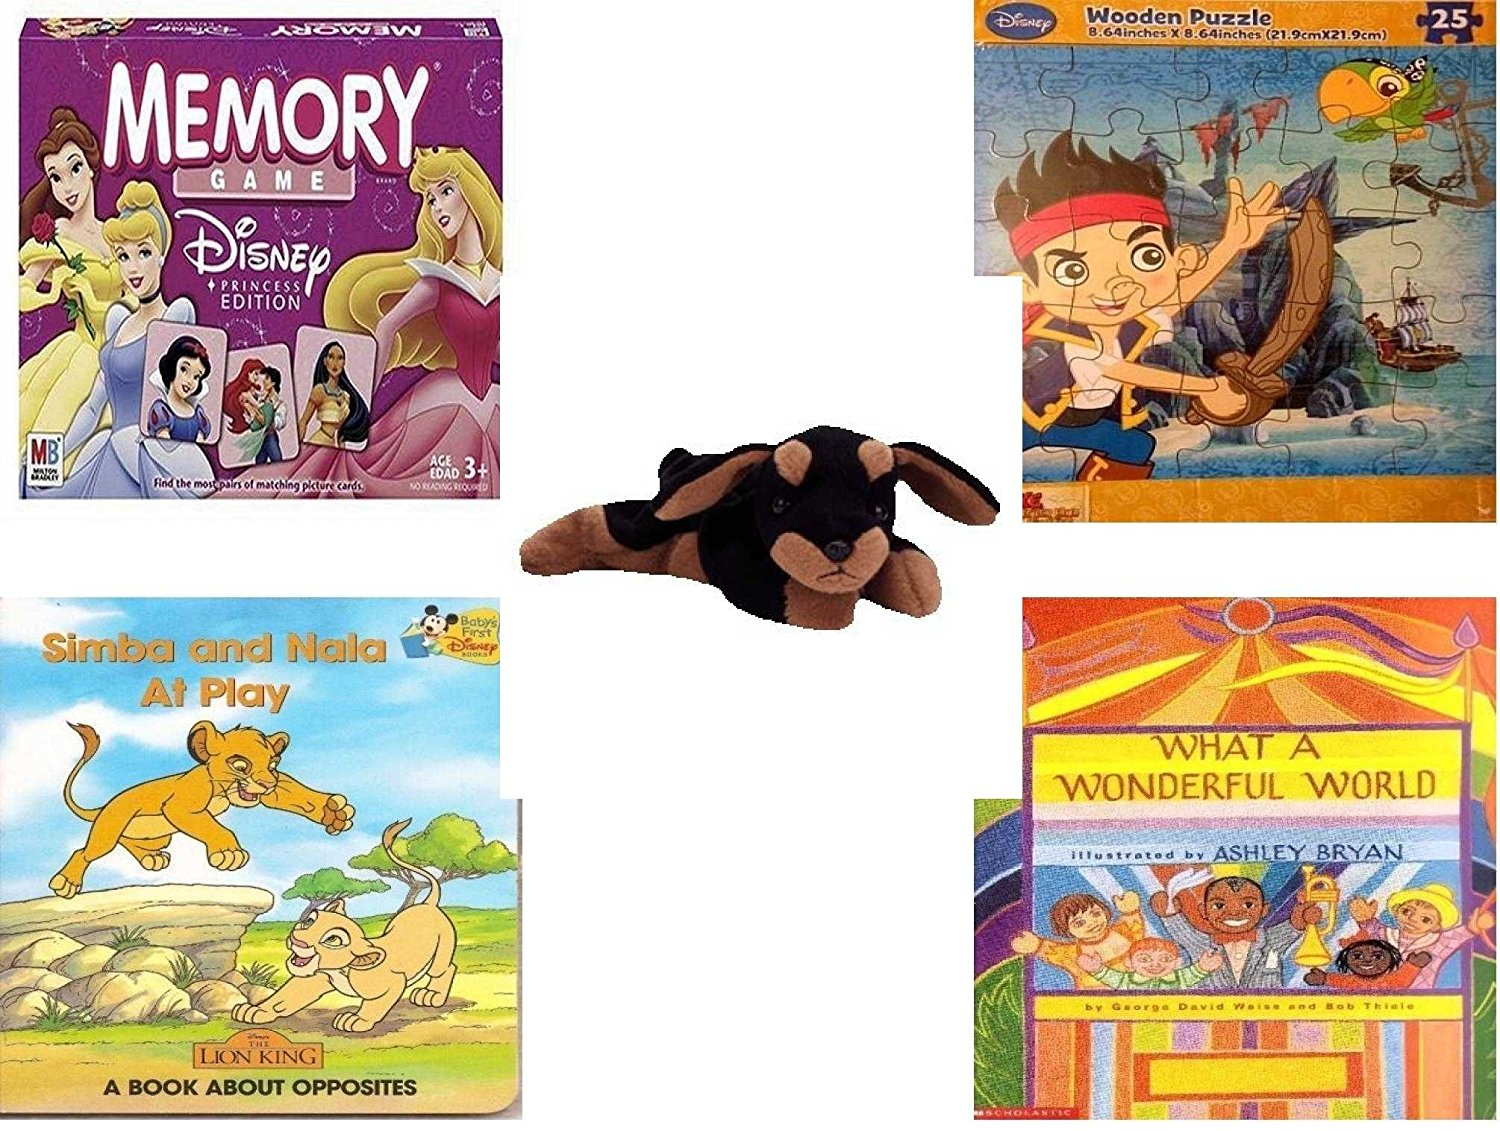 Children's Gift Bundle - Ages 3-5 [5 Piece] - Disney Princess Edition Memory Game - Disney Jake and The Never Land Pirates Puzzle Toy - Ty Beanie Baby - Doby the Doberman - Simba and Nala At Play: A